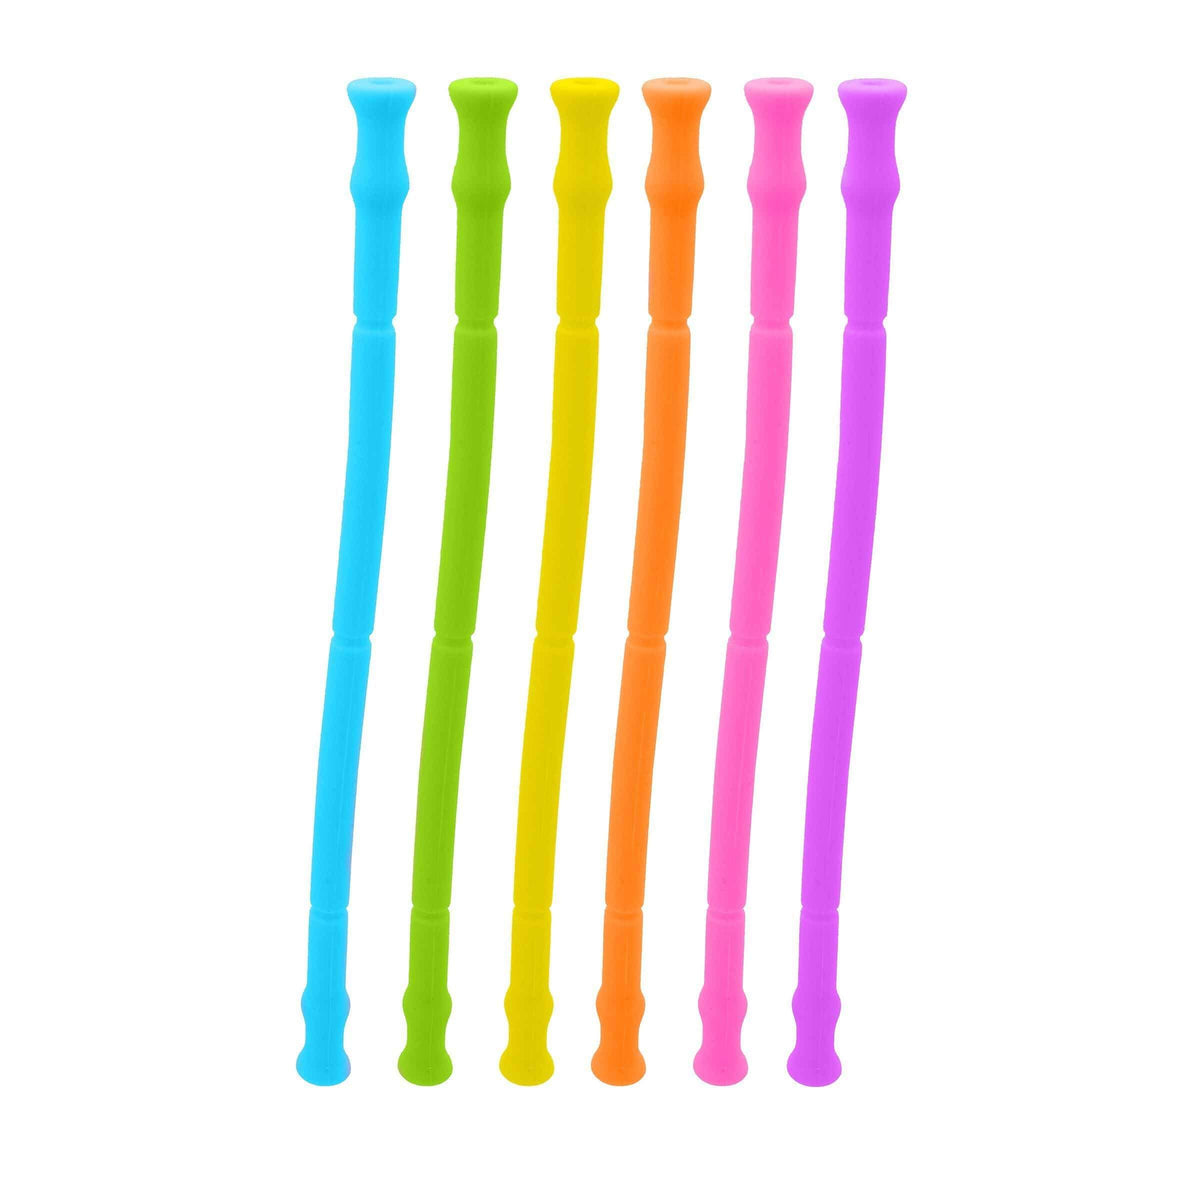 Travel Silicon Straw - Set of 6